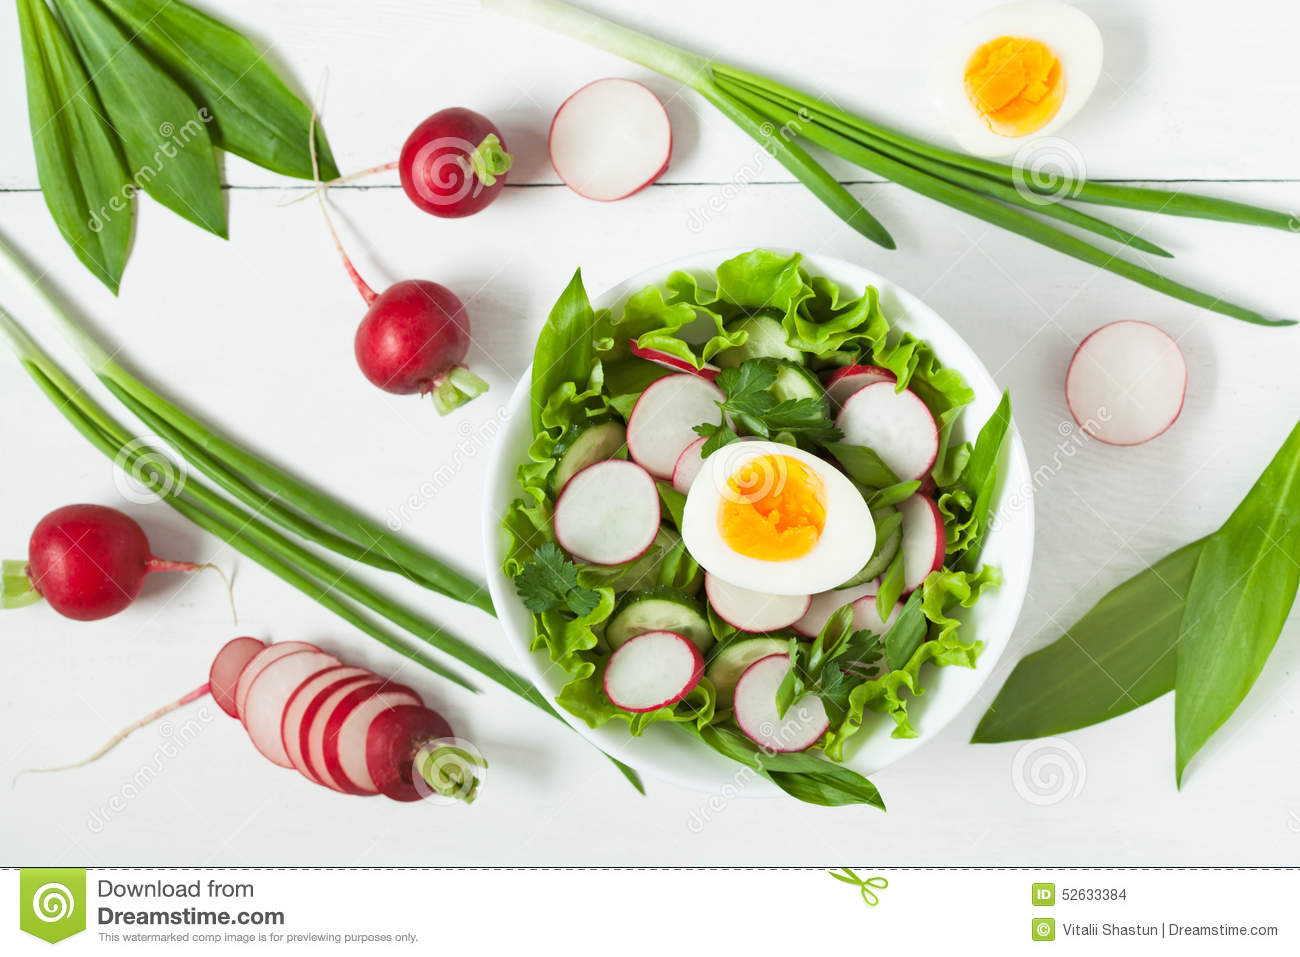 Clean eating food spring salad vith ripe raw stock photo image of organic ingredient 52633384 - Foods never wash cooking ...